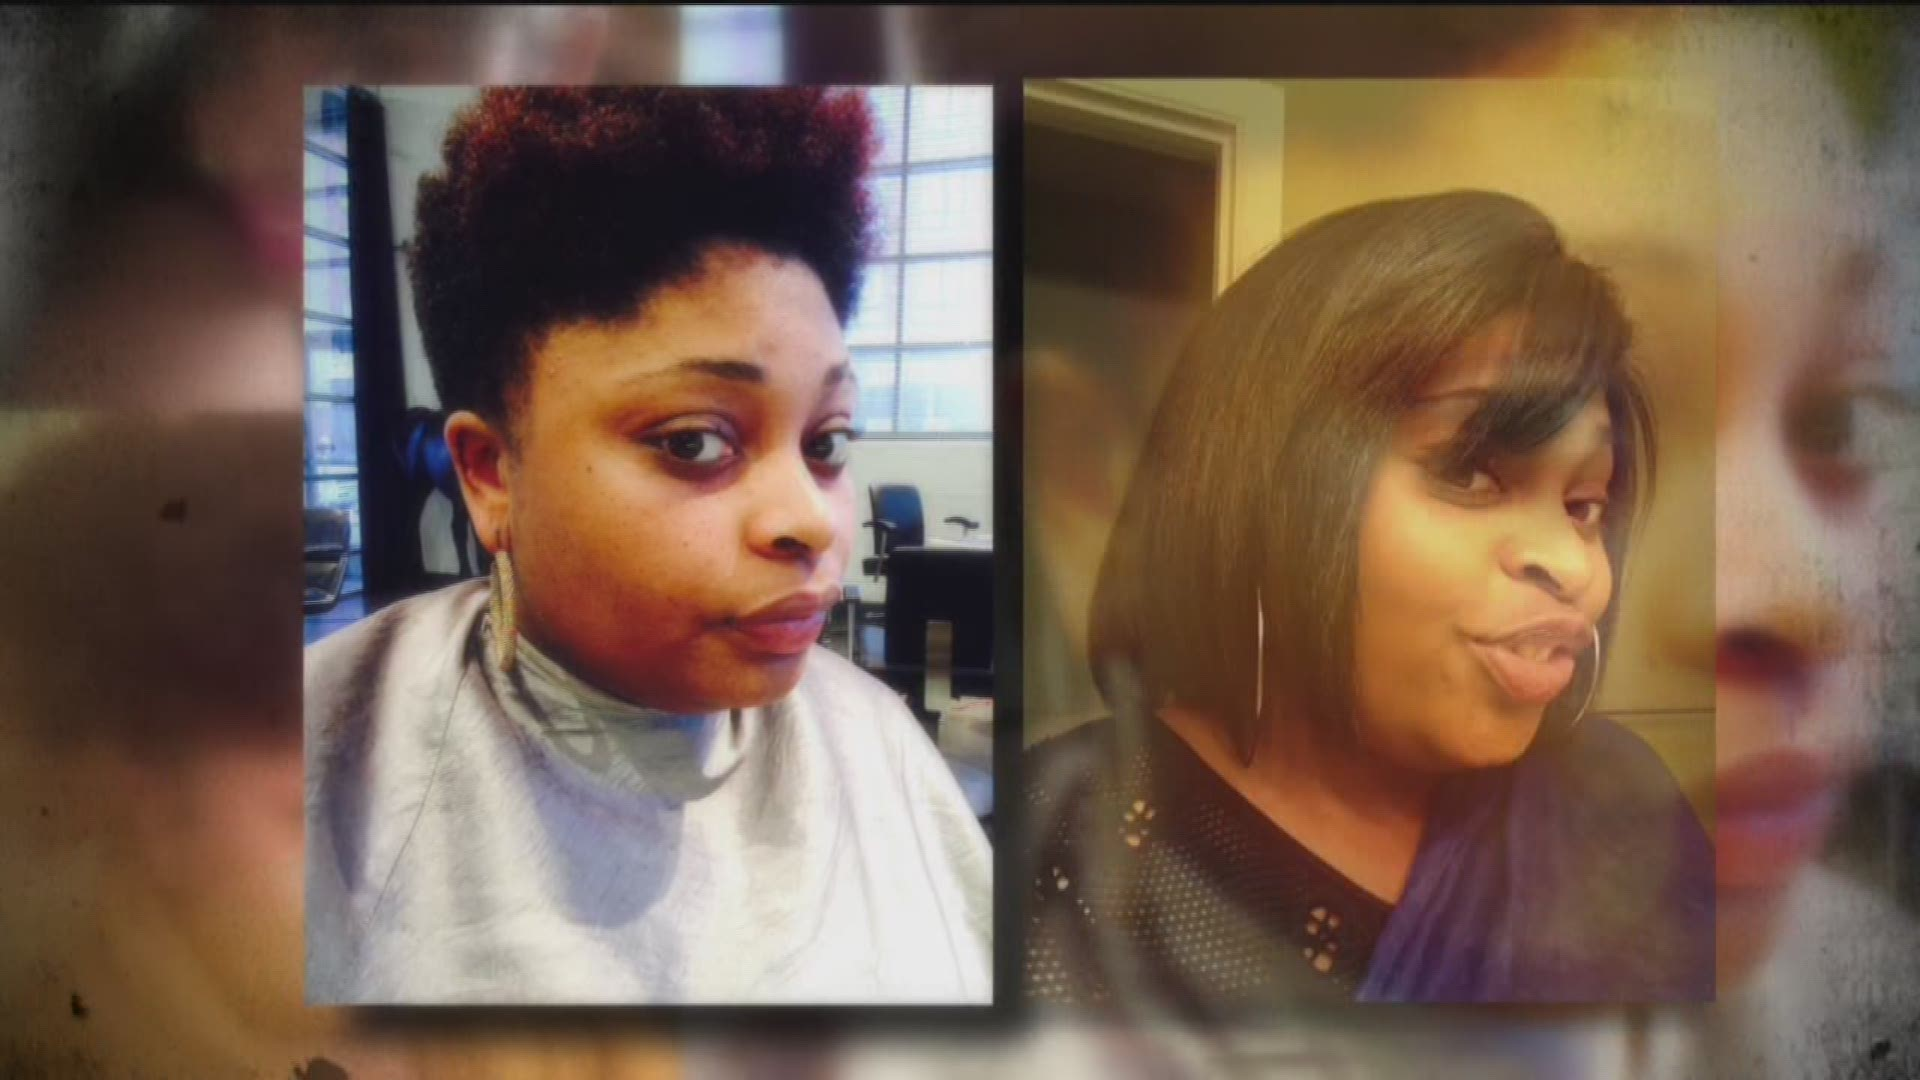 Mpls Hair Salon Fires Stylist After Controversy Kare11 Com